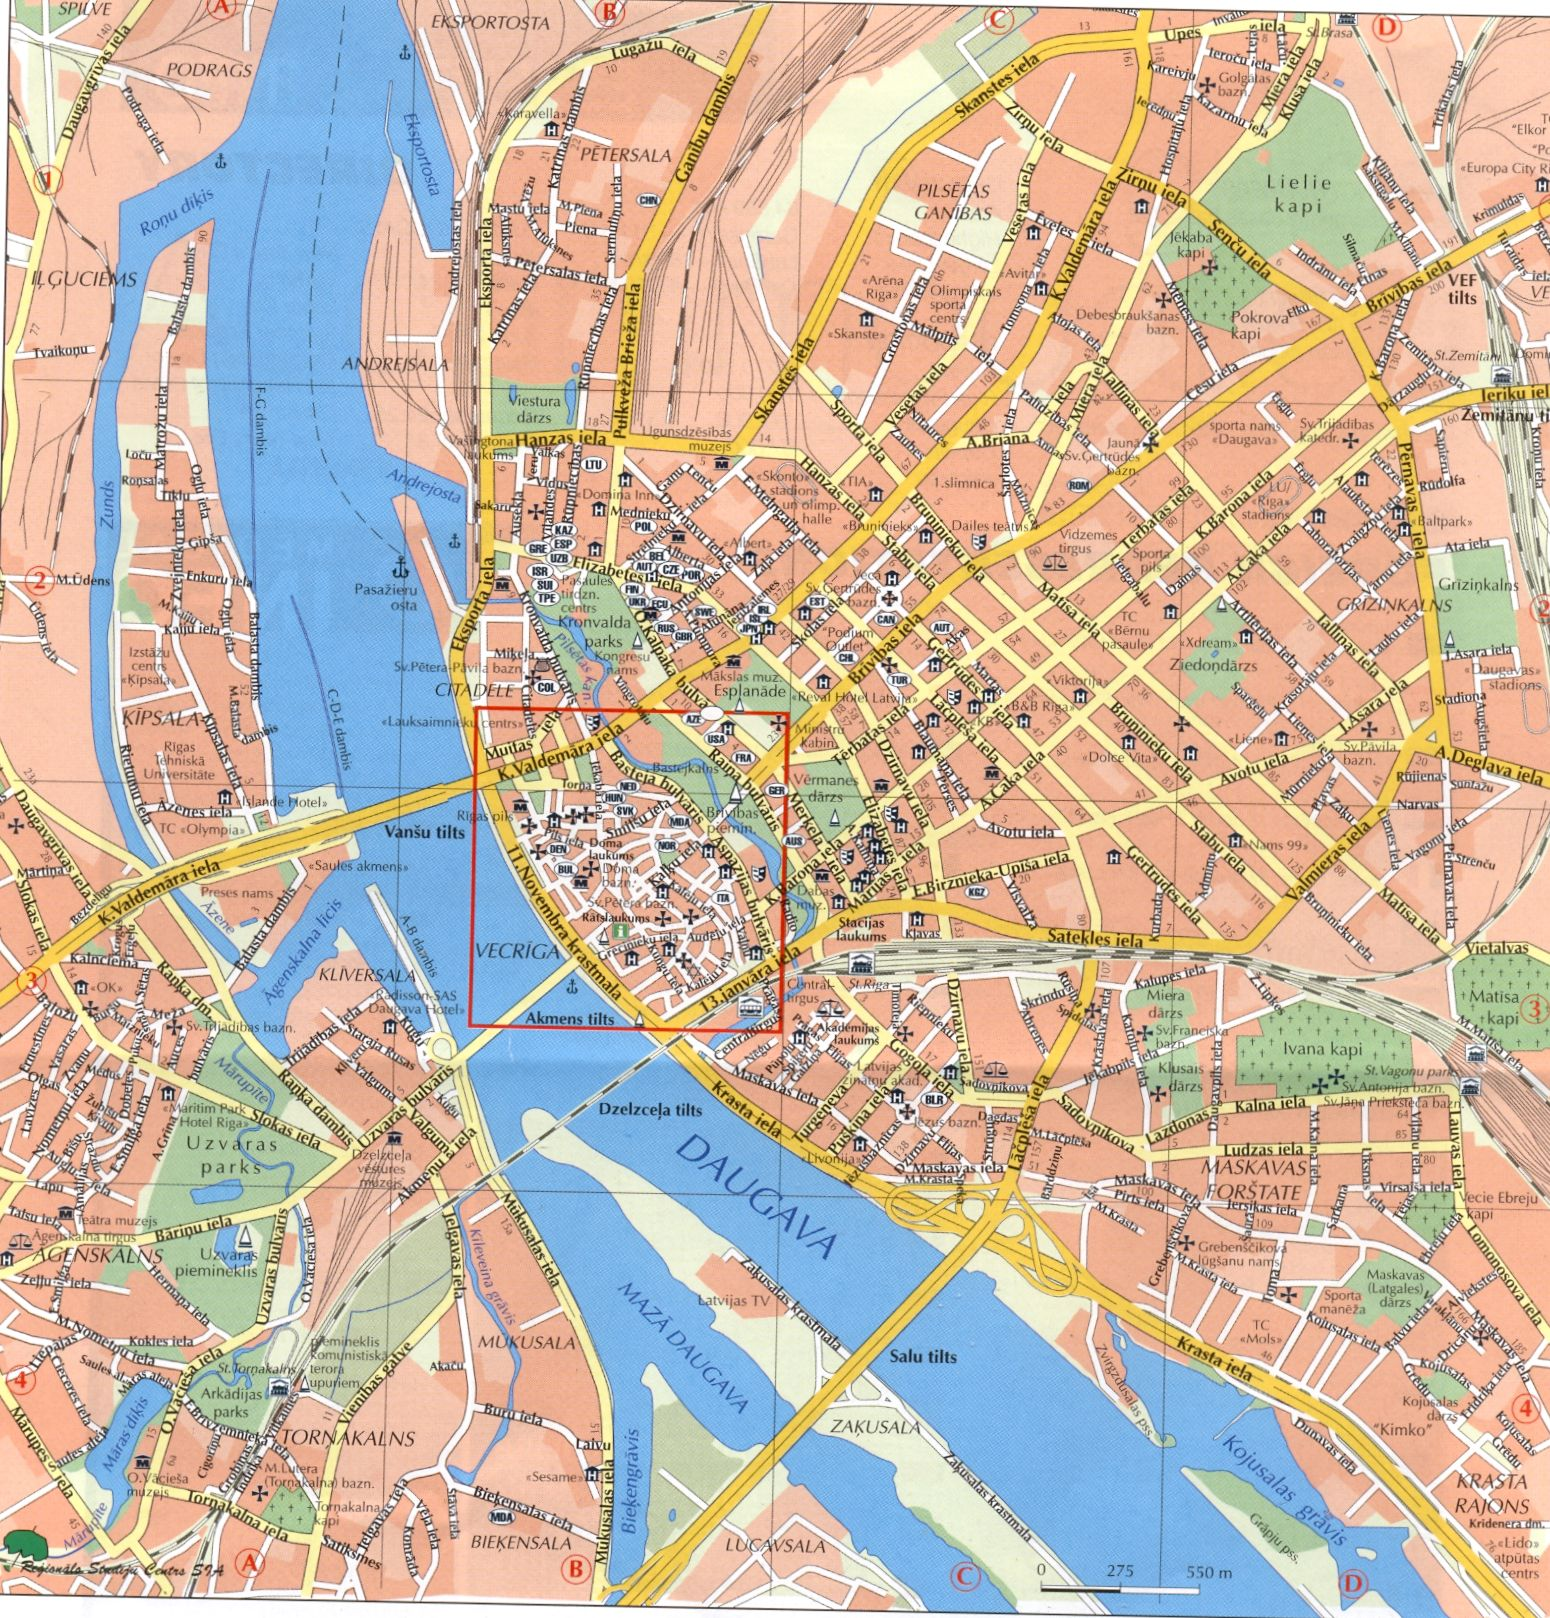 Maps Of Latvia And The Capital City Riga In The Baltics Region Of NE - Old riga map